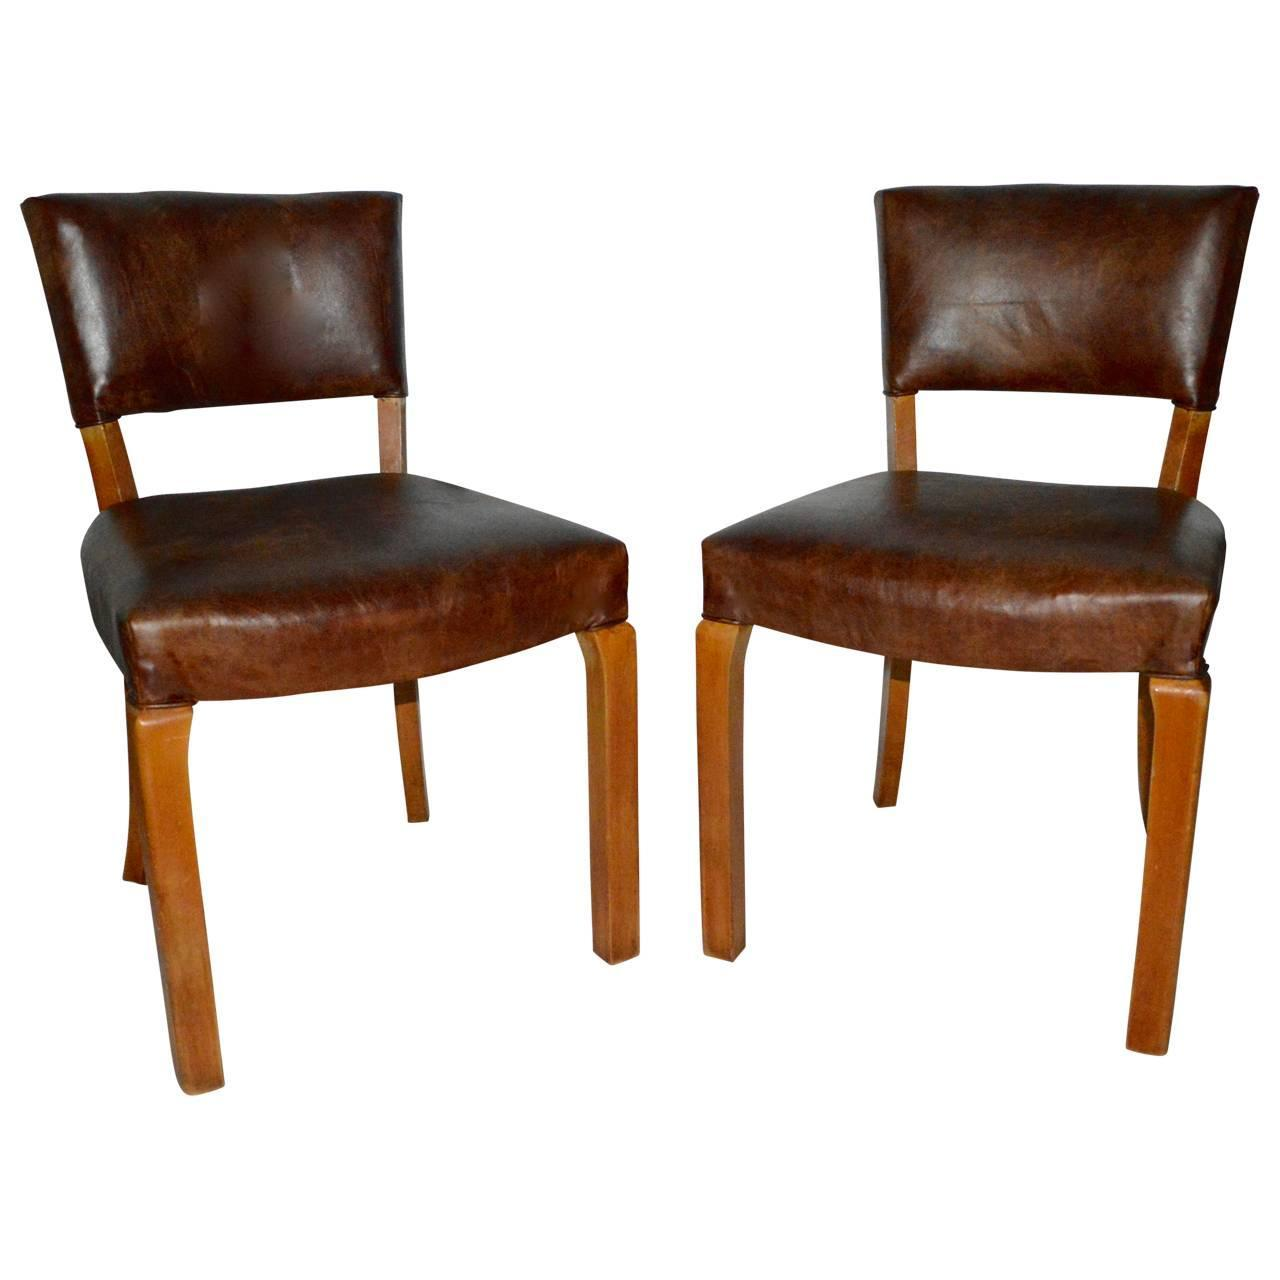 20th Century Art Deco Leather Dining Chairs For Sale At 1stdibs